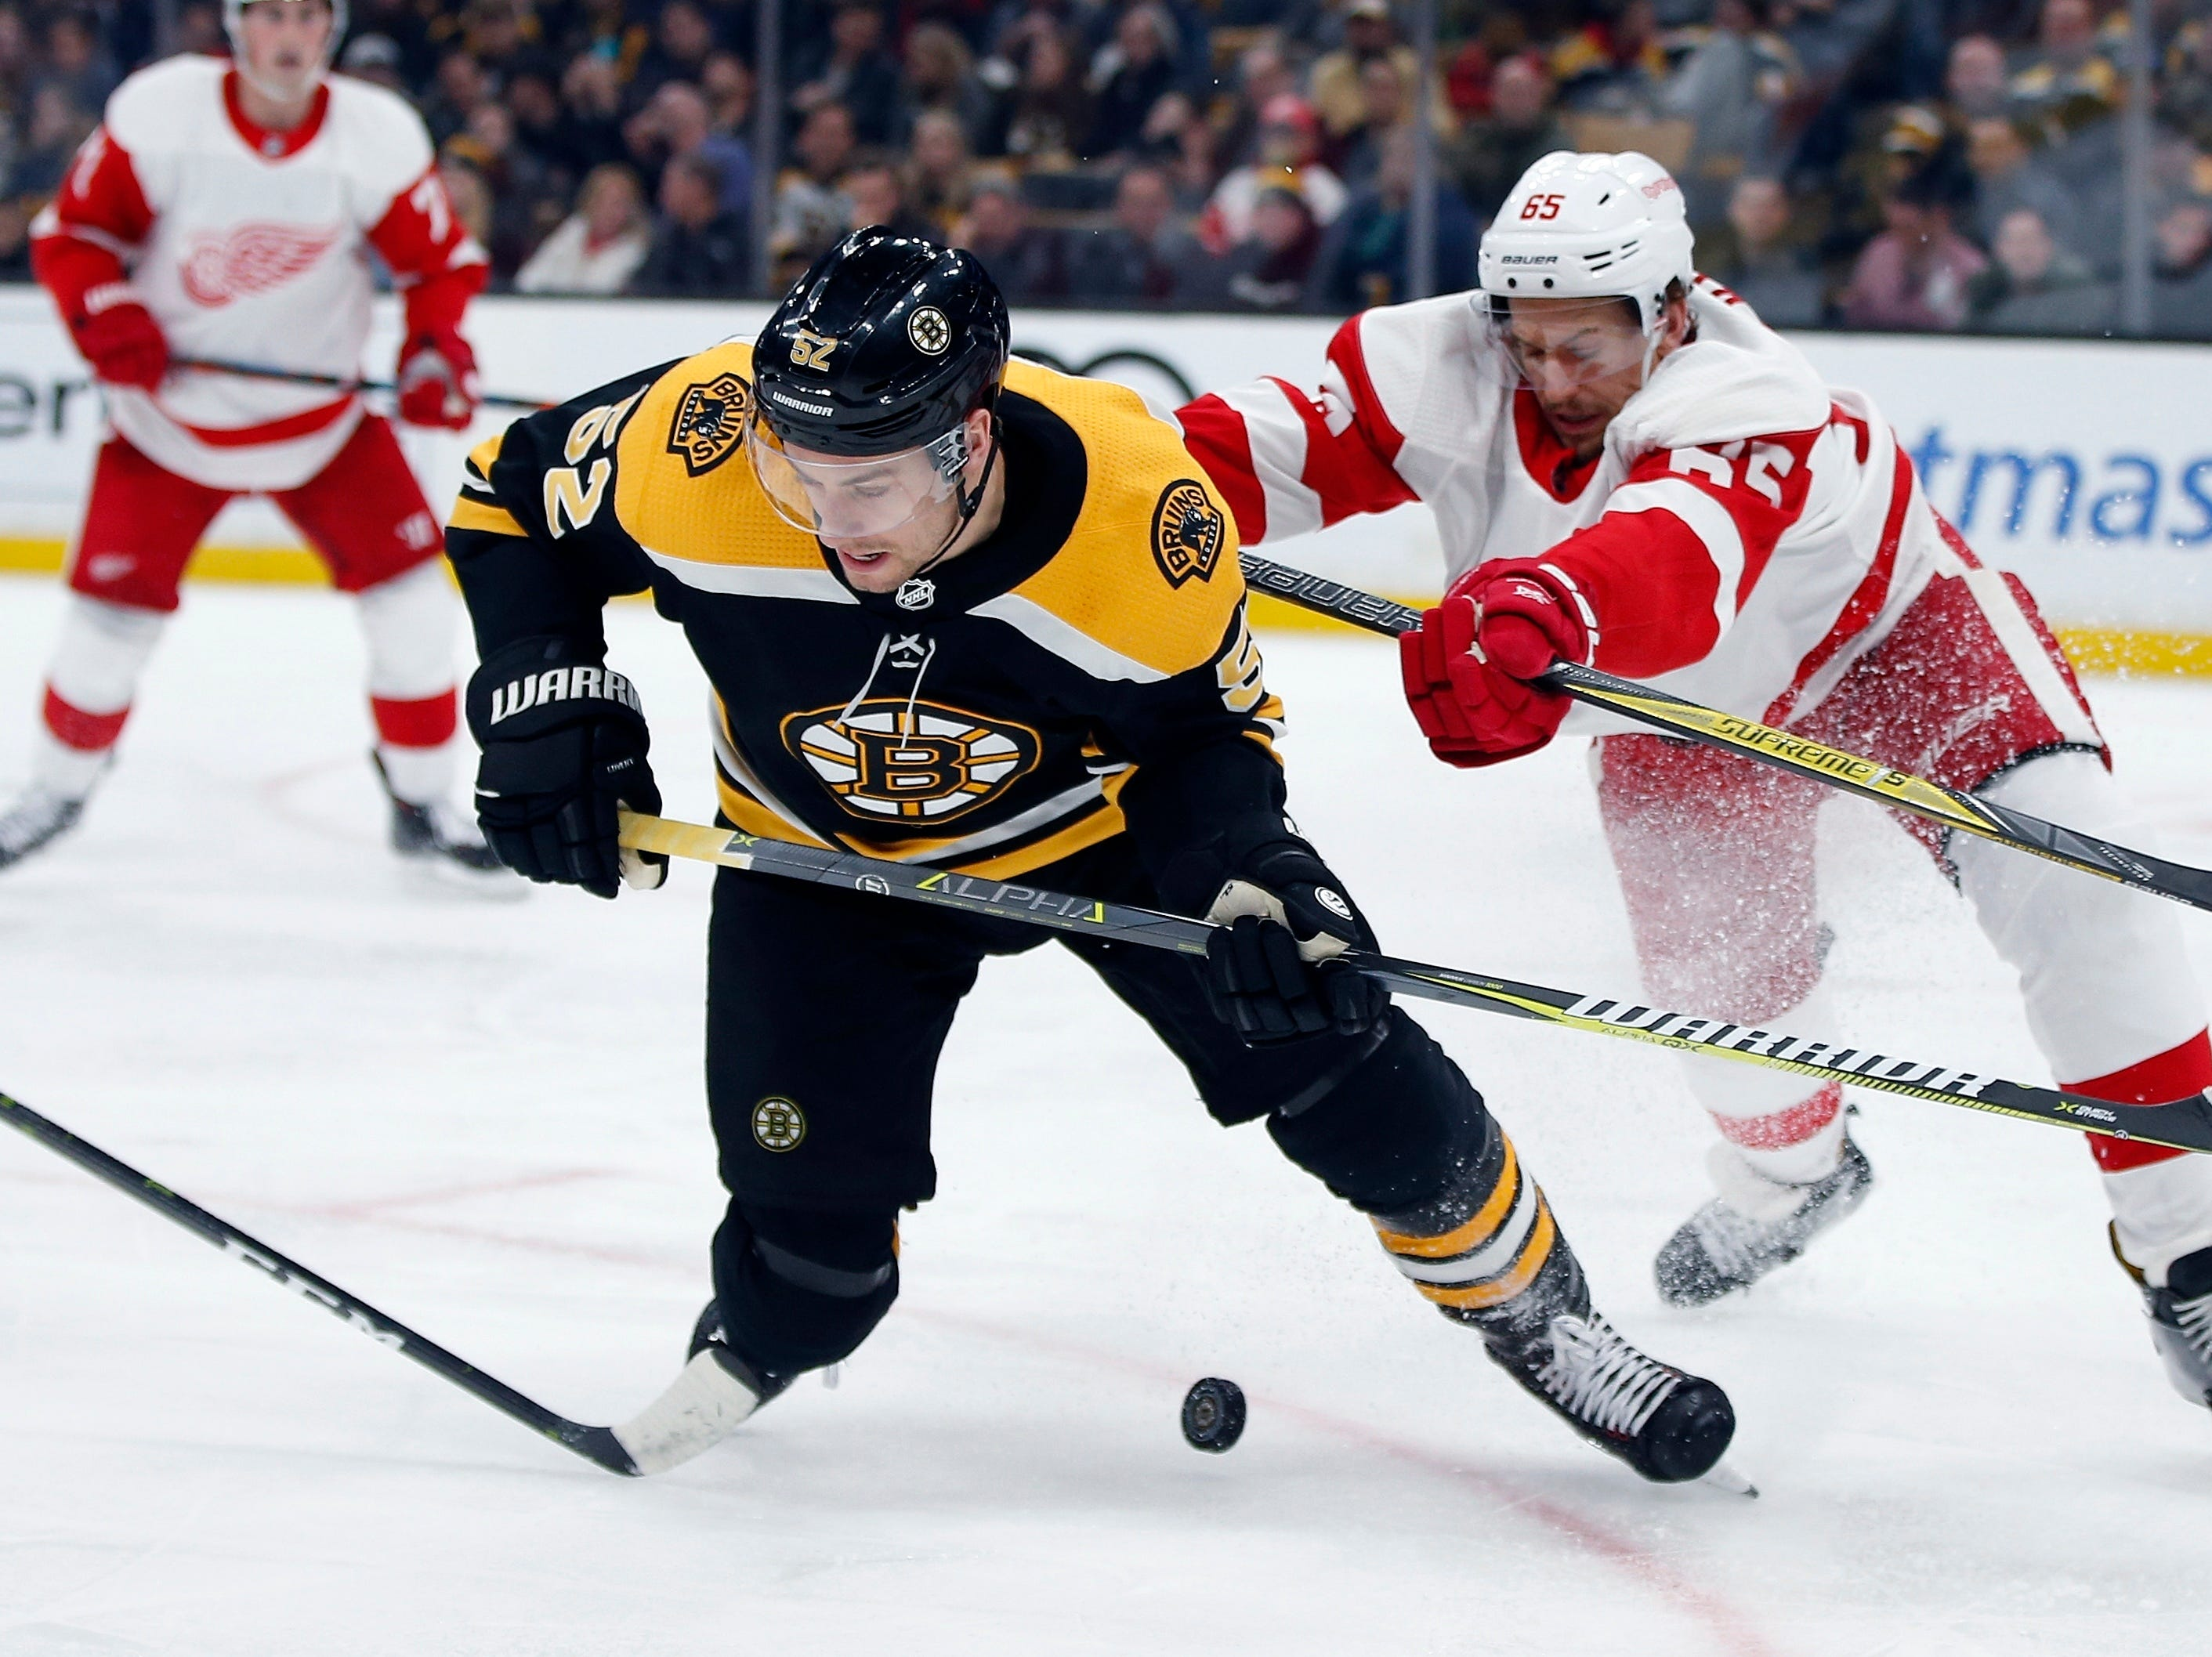 Detroit Red Wings' Danny DeKeyser (65) checks Boston Bruins' Sean Kuraly (52) during the second period.